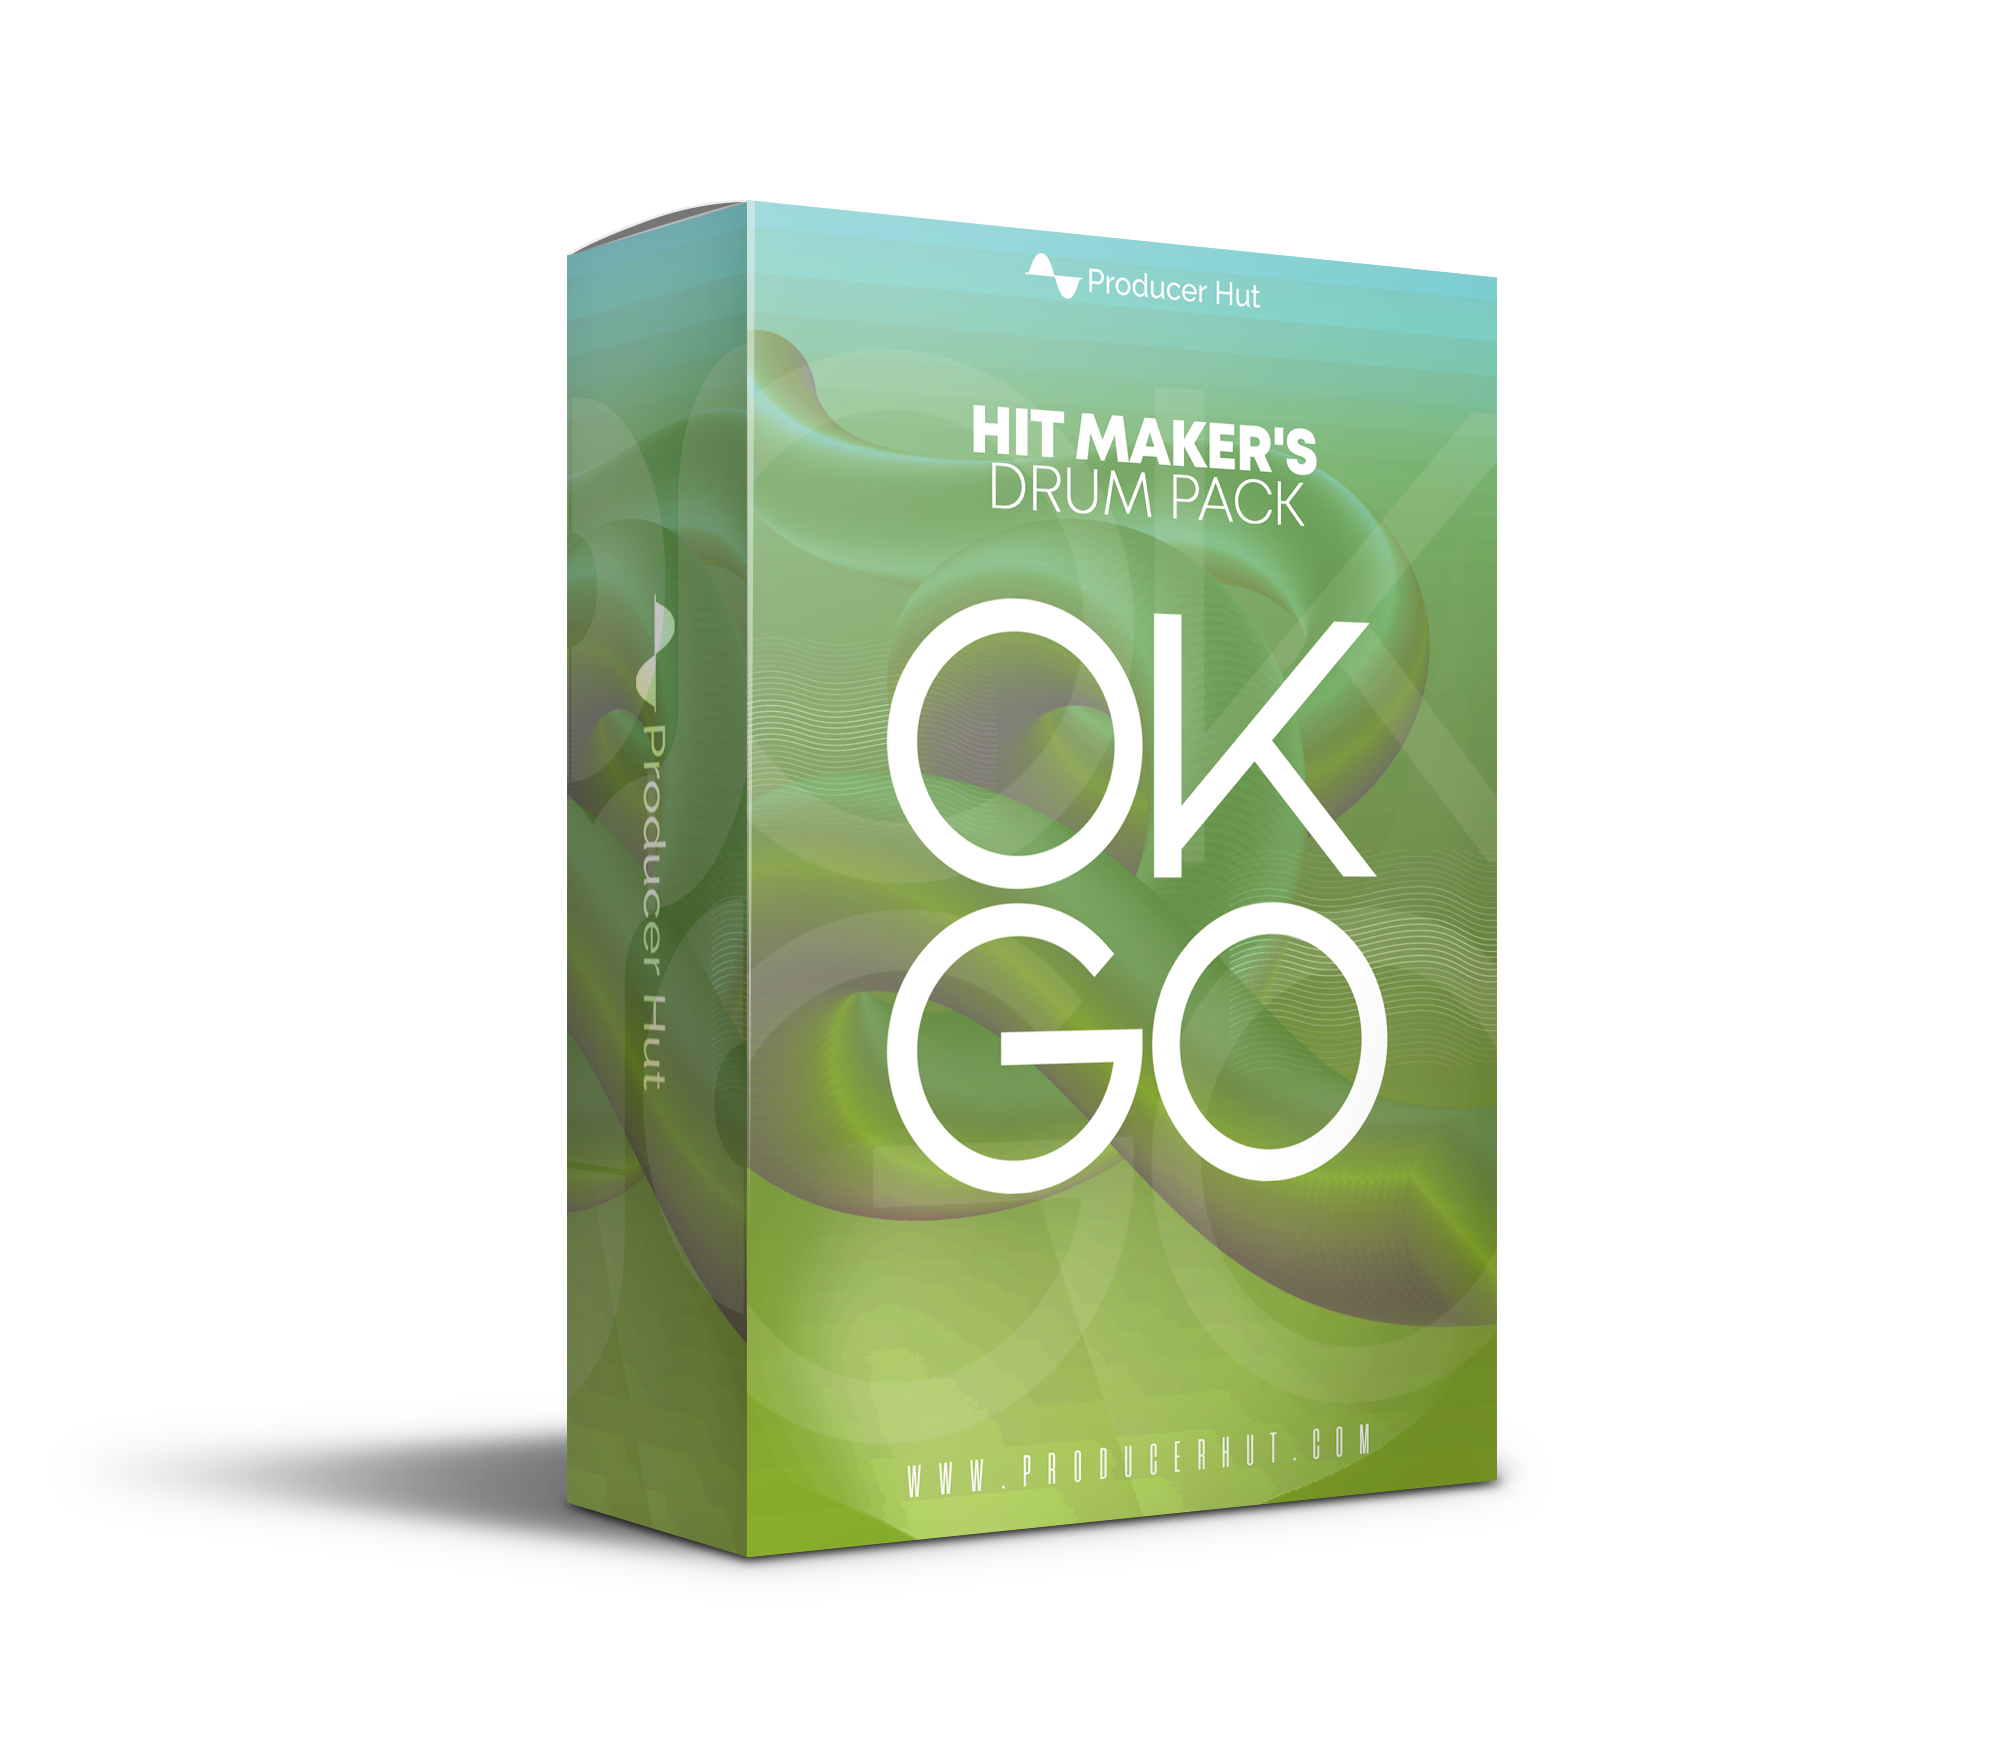 Hit Maker's Drum Pack by OKGO